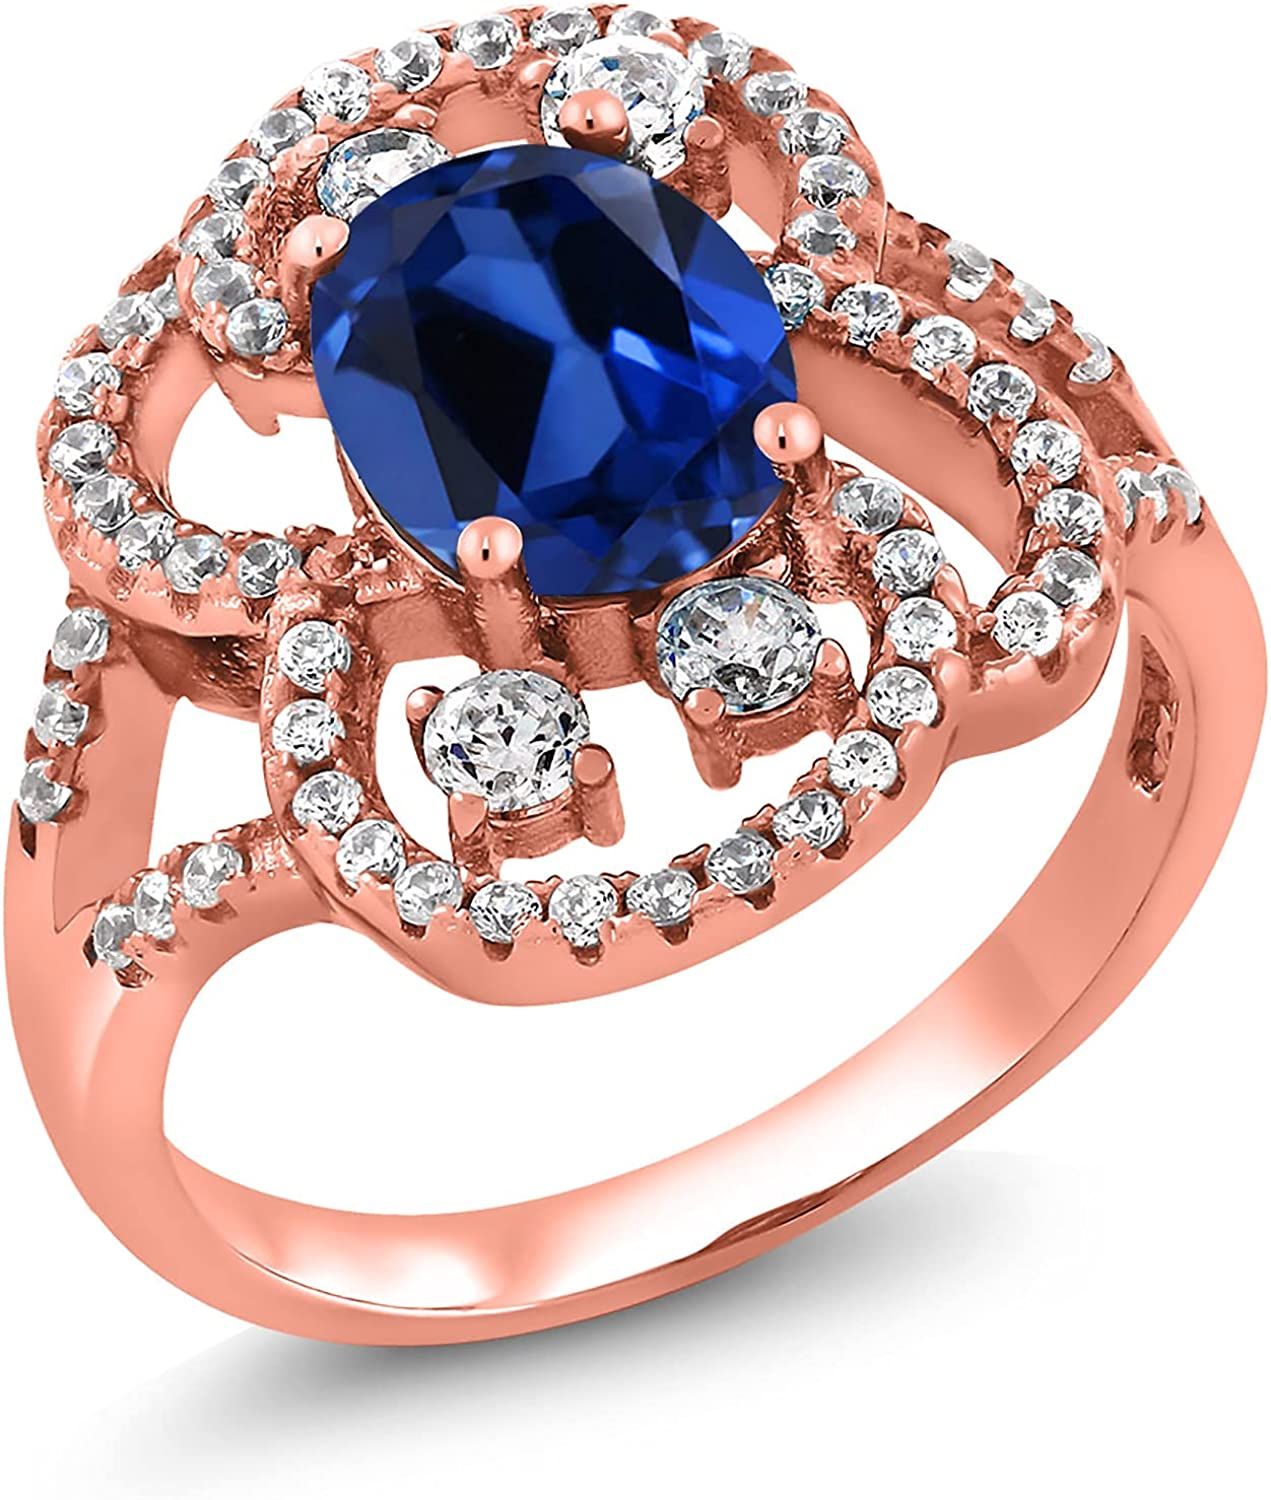 Gem Stone King 3.12 Ct Oval Sapphire Tampa Mall Created Charlotte Mall Gold Rose Blue 18K